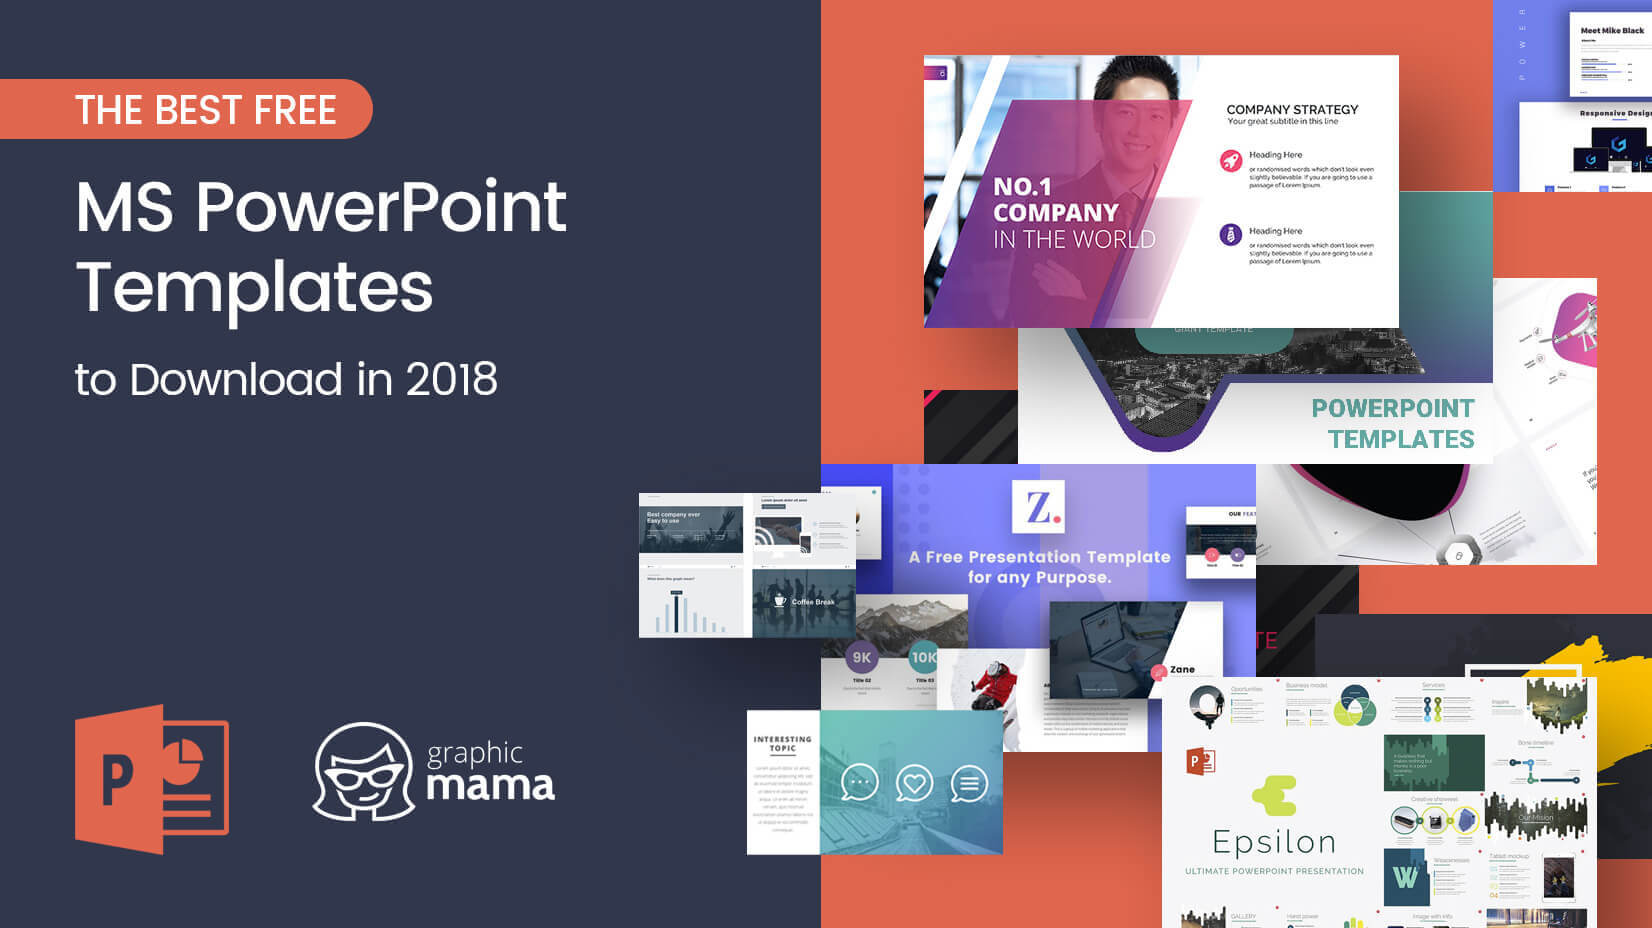 The Best Free Powerpoint Templates To Download In 2018 Intended For Powerpoint Slides Design Templates For Free